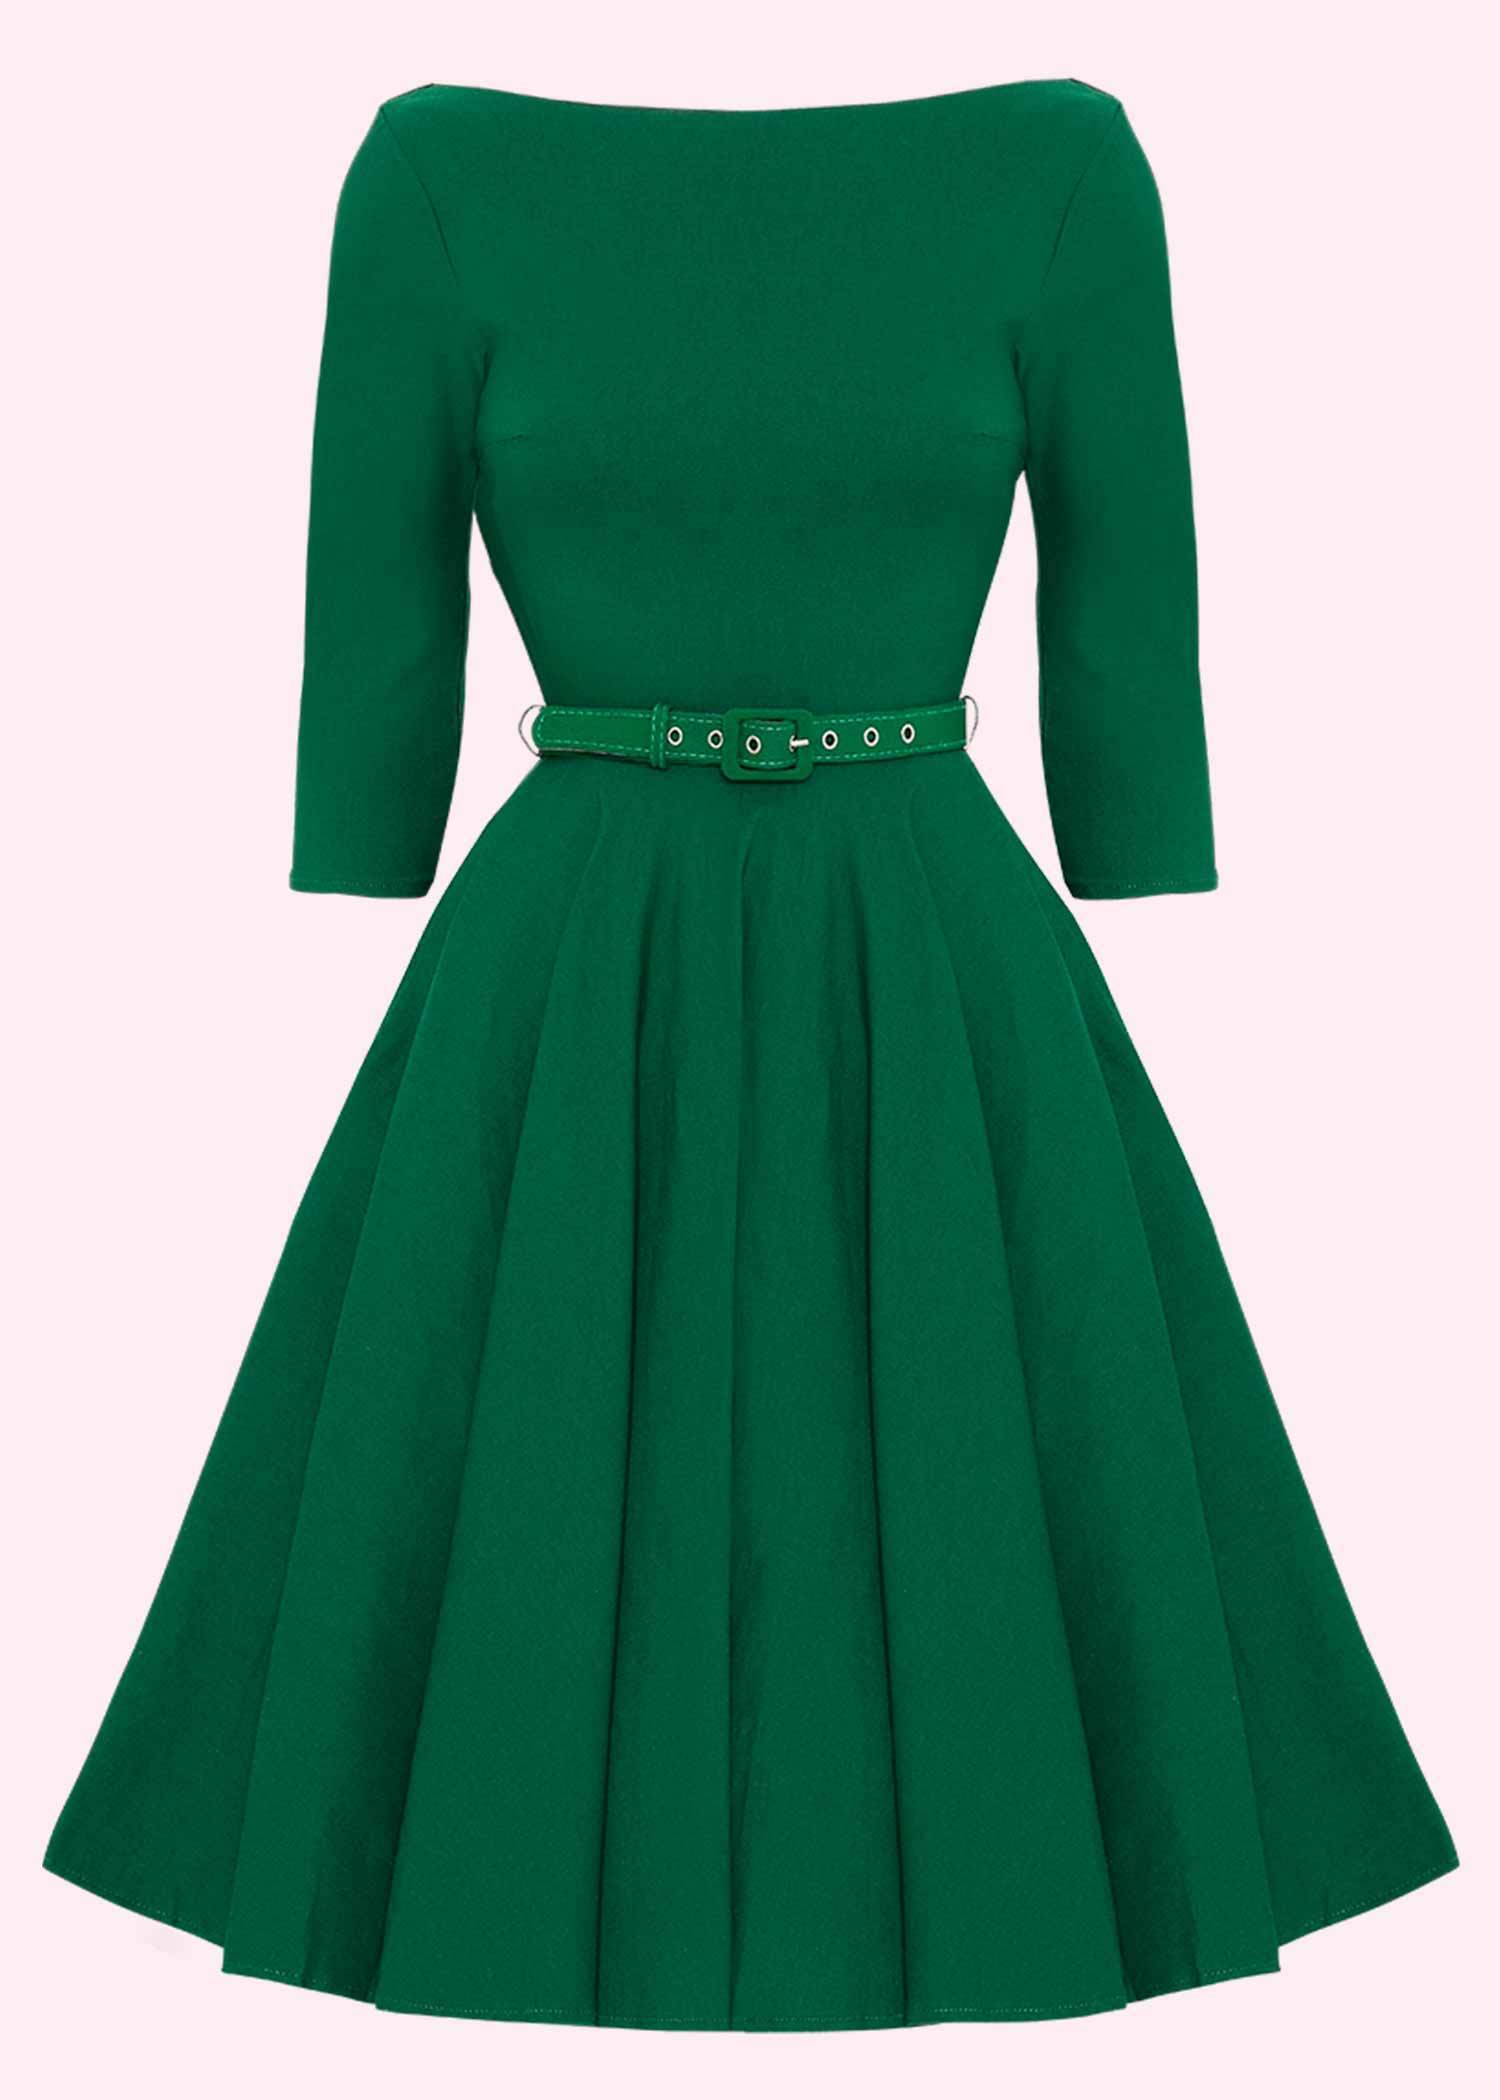 Unique Vintage swing dress in green